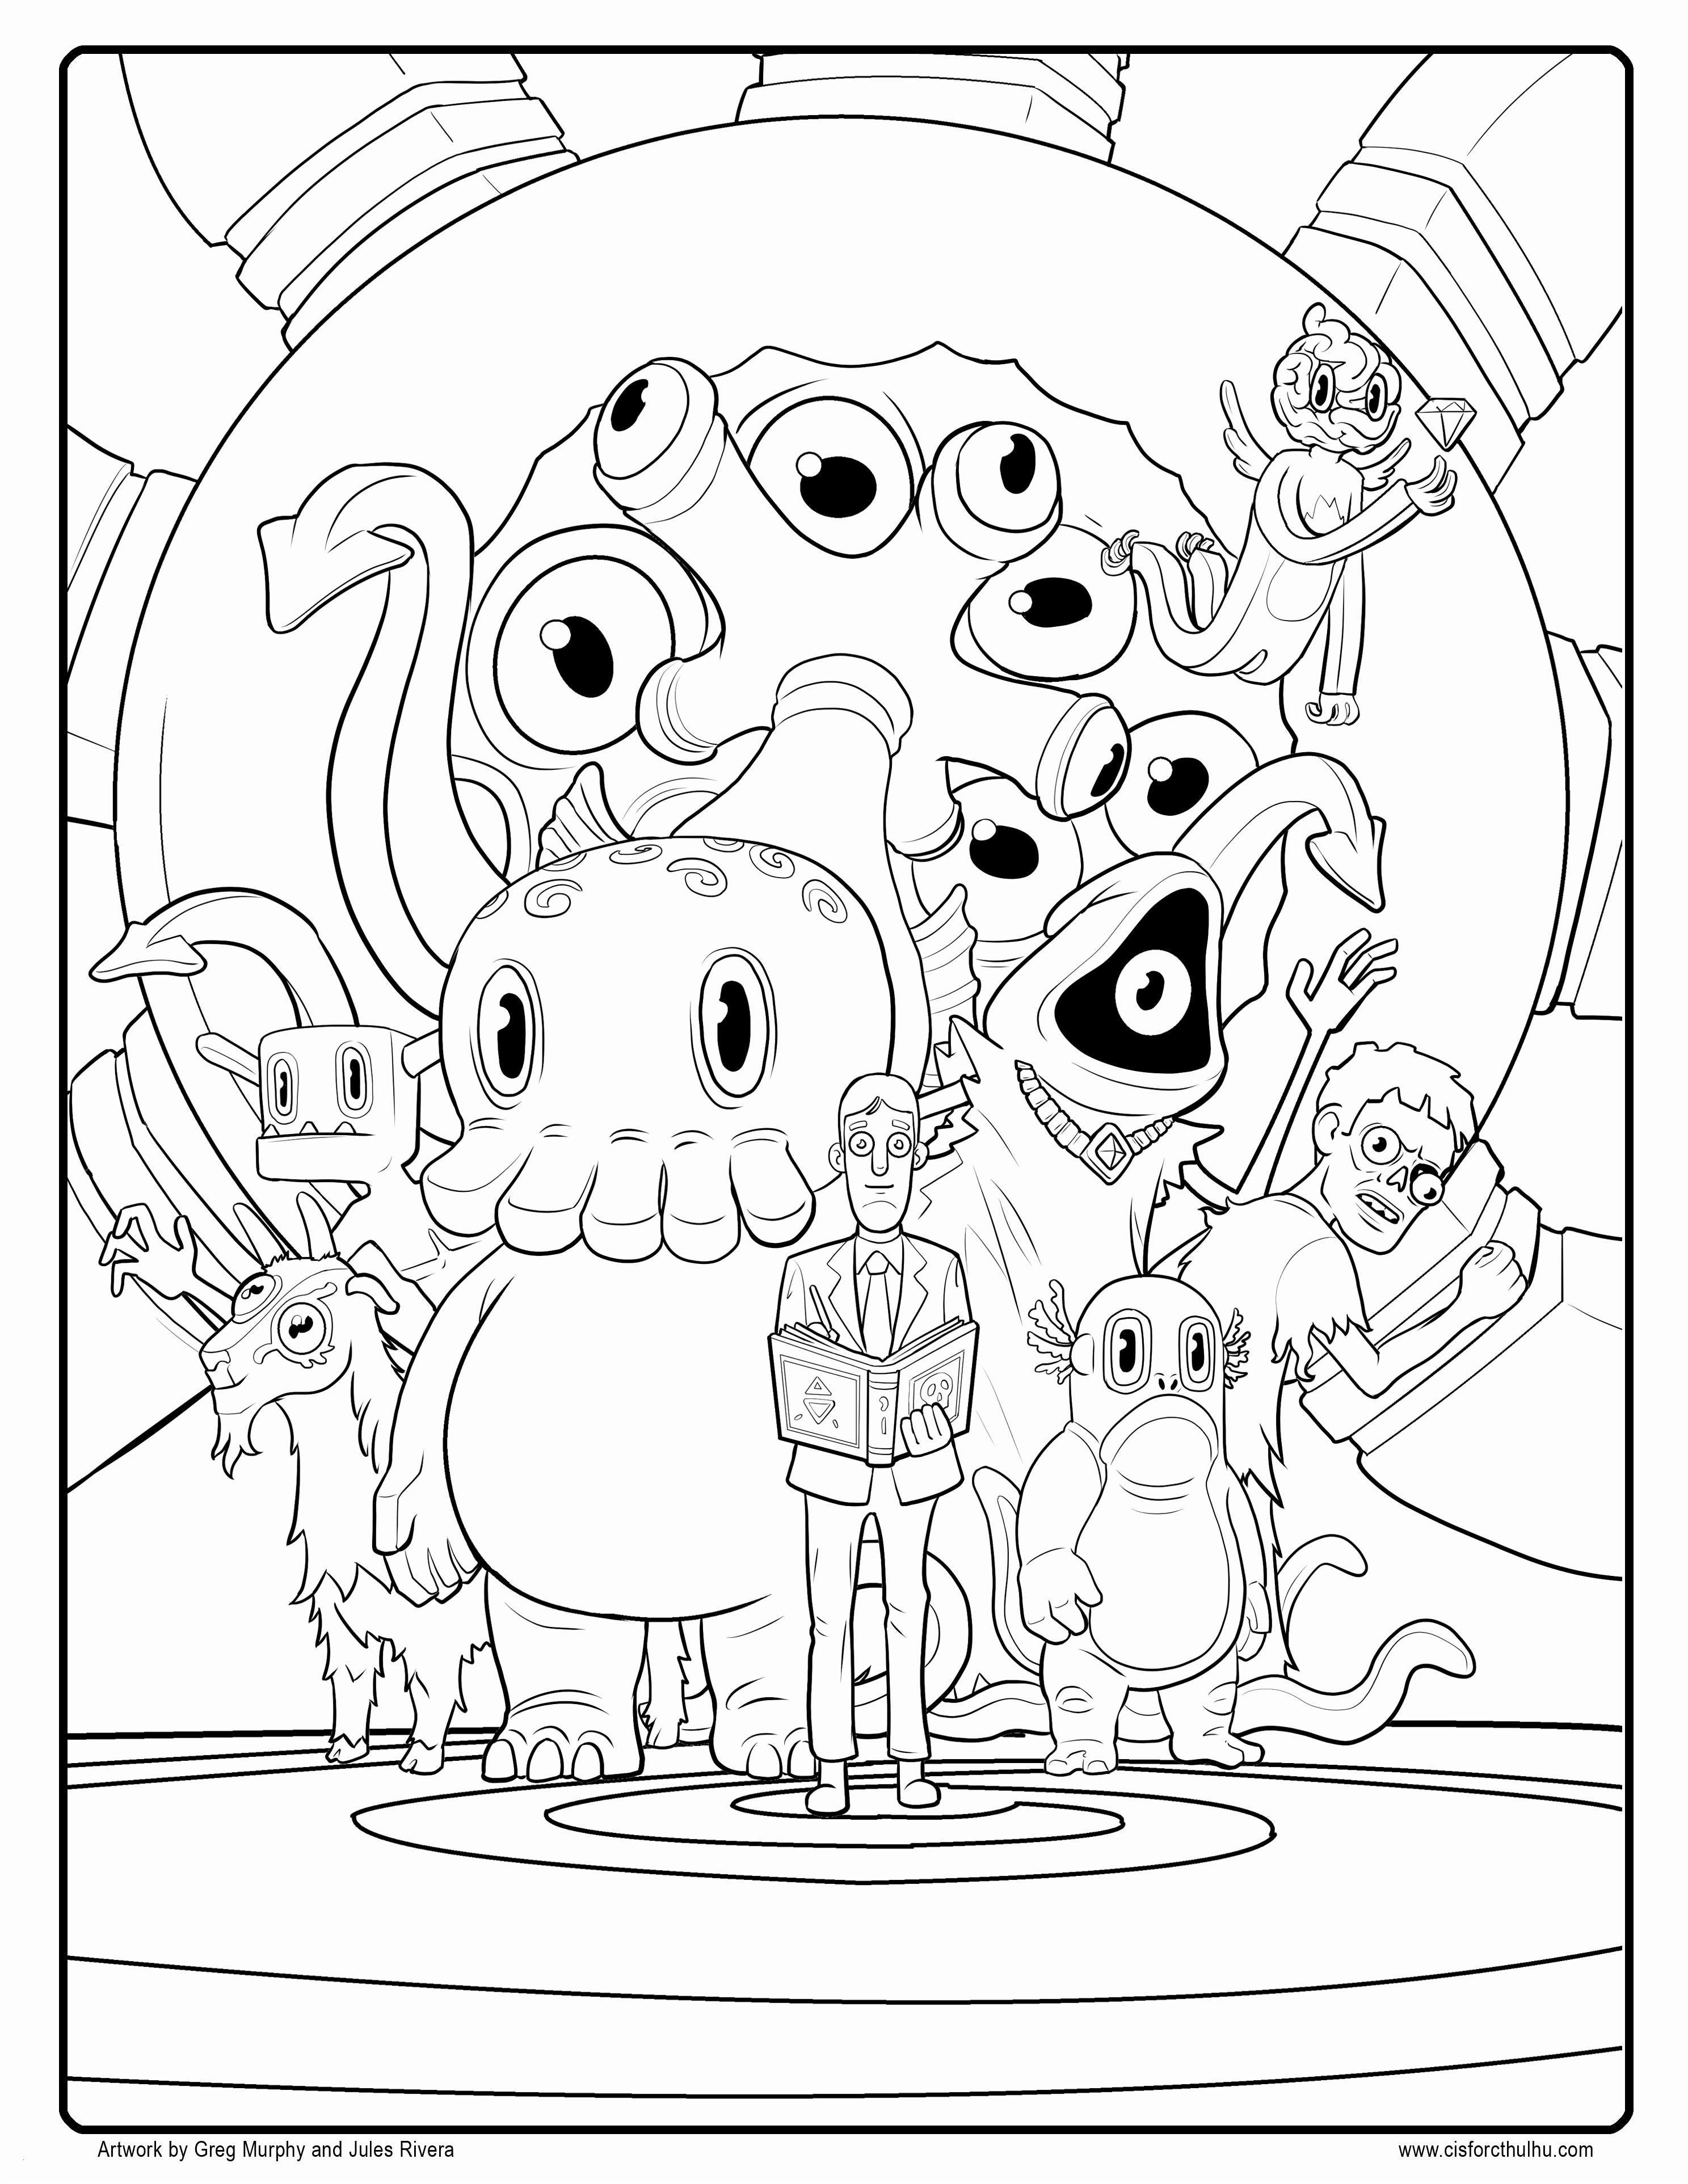 coloring pages bookmarks Collection-Rocketship Coloring Page Coloring Jobs Brilliant Coloring Pages Fresh Printable Cds 0d 20-t